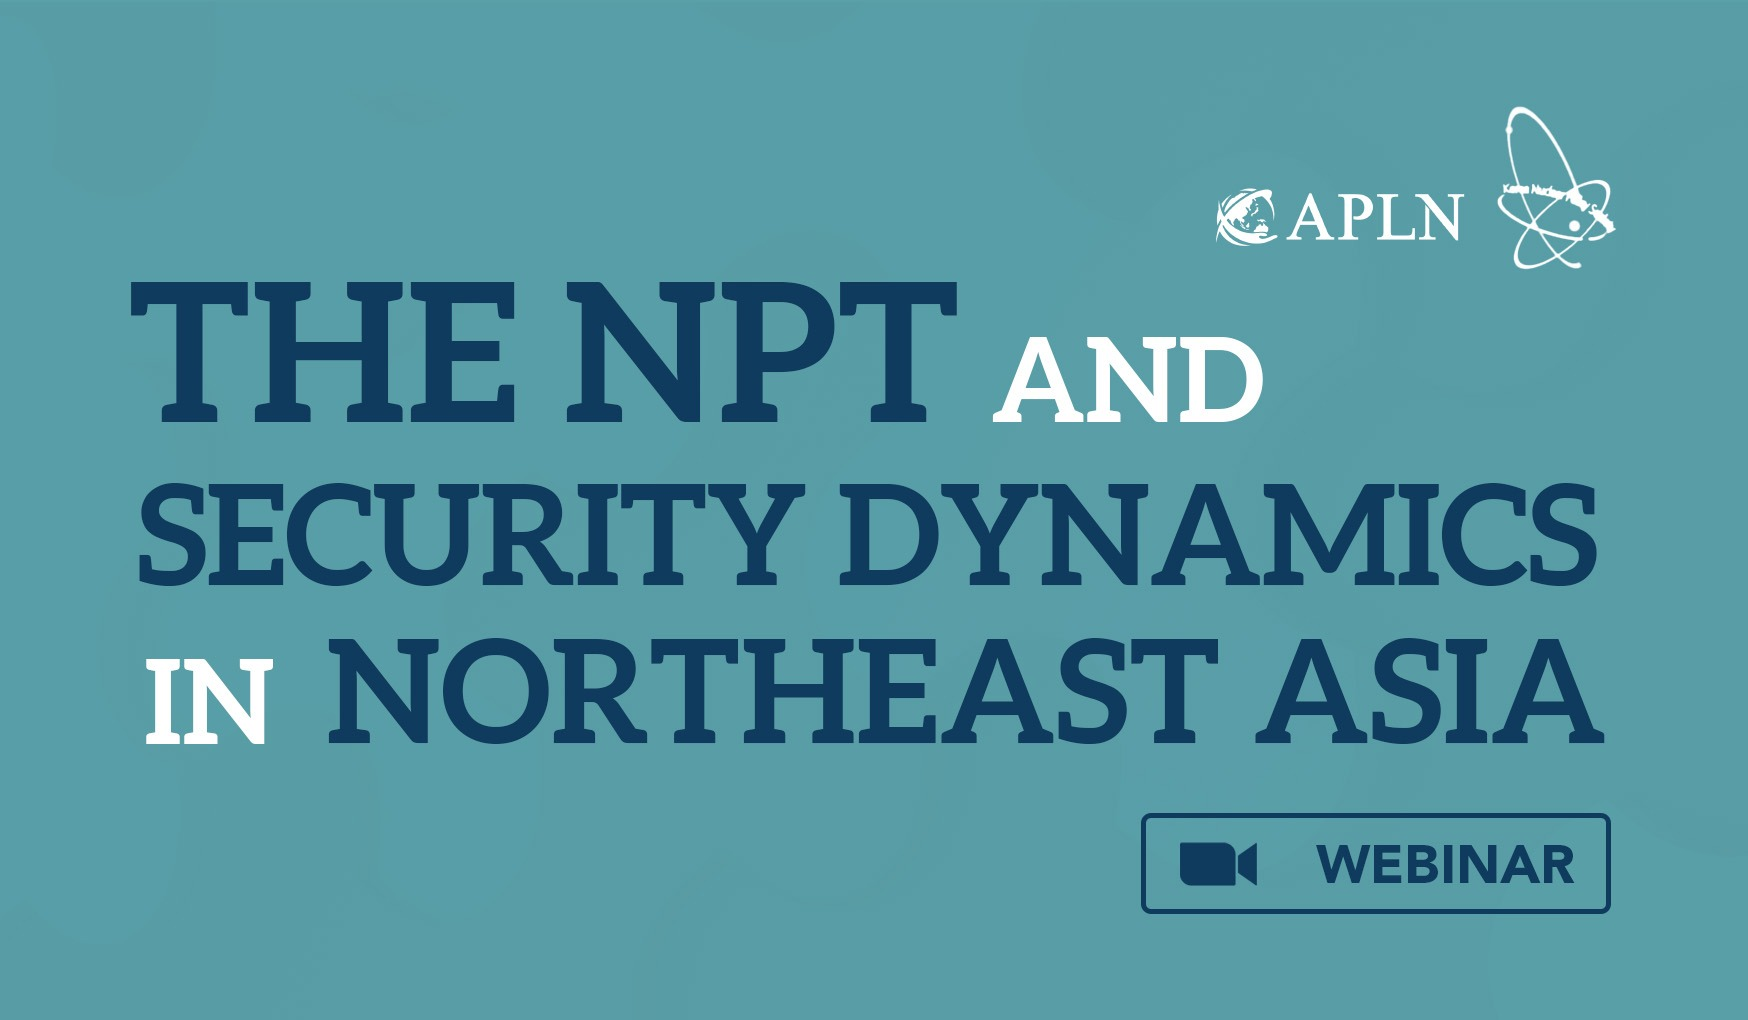 Webinar on The NPT and Security Dynamics in Northeast Asia (8-9 July)